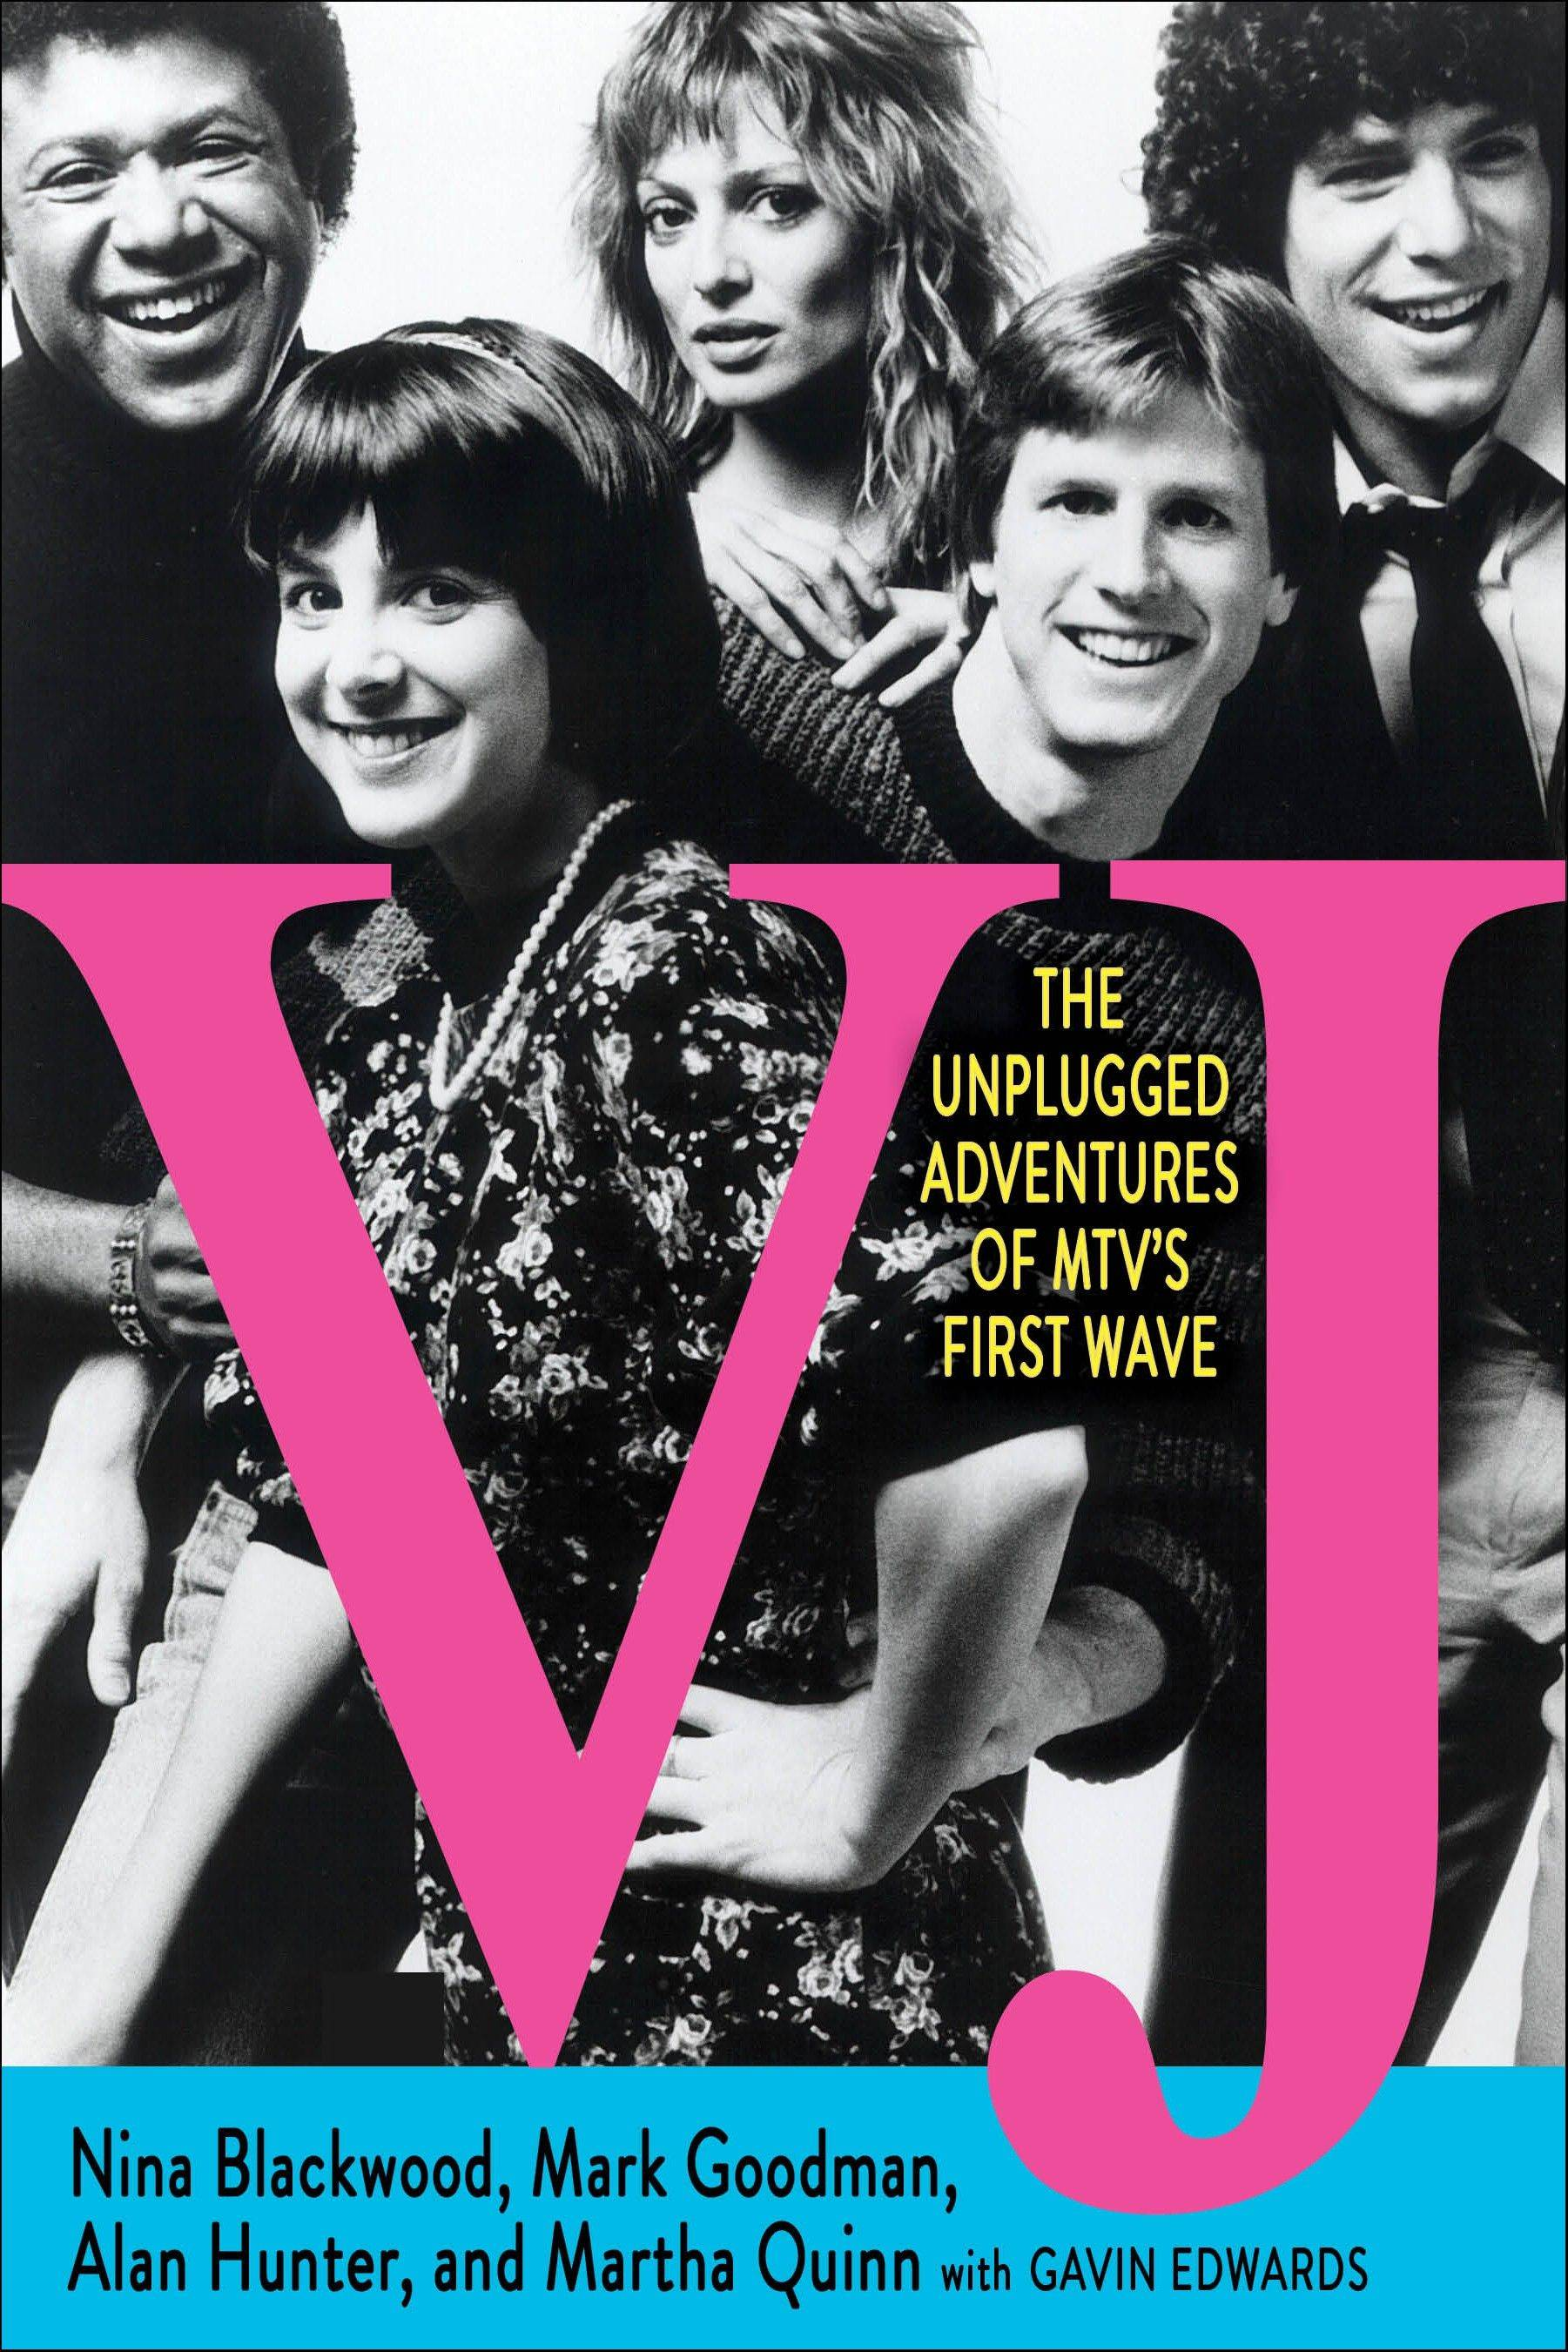 """VJ: The Unplugged Adventures of MTV's First Wave"" by Nina Blackwood, Mark Goodman, Alan Hunter and Martha Quinn"